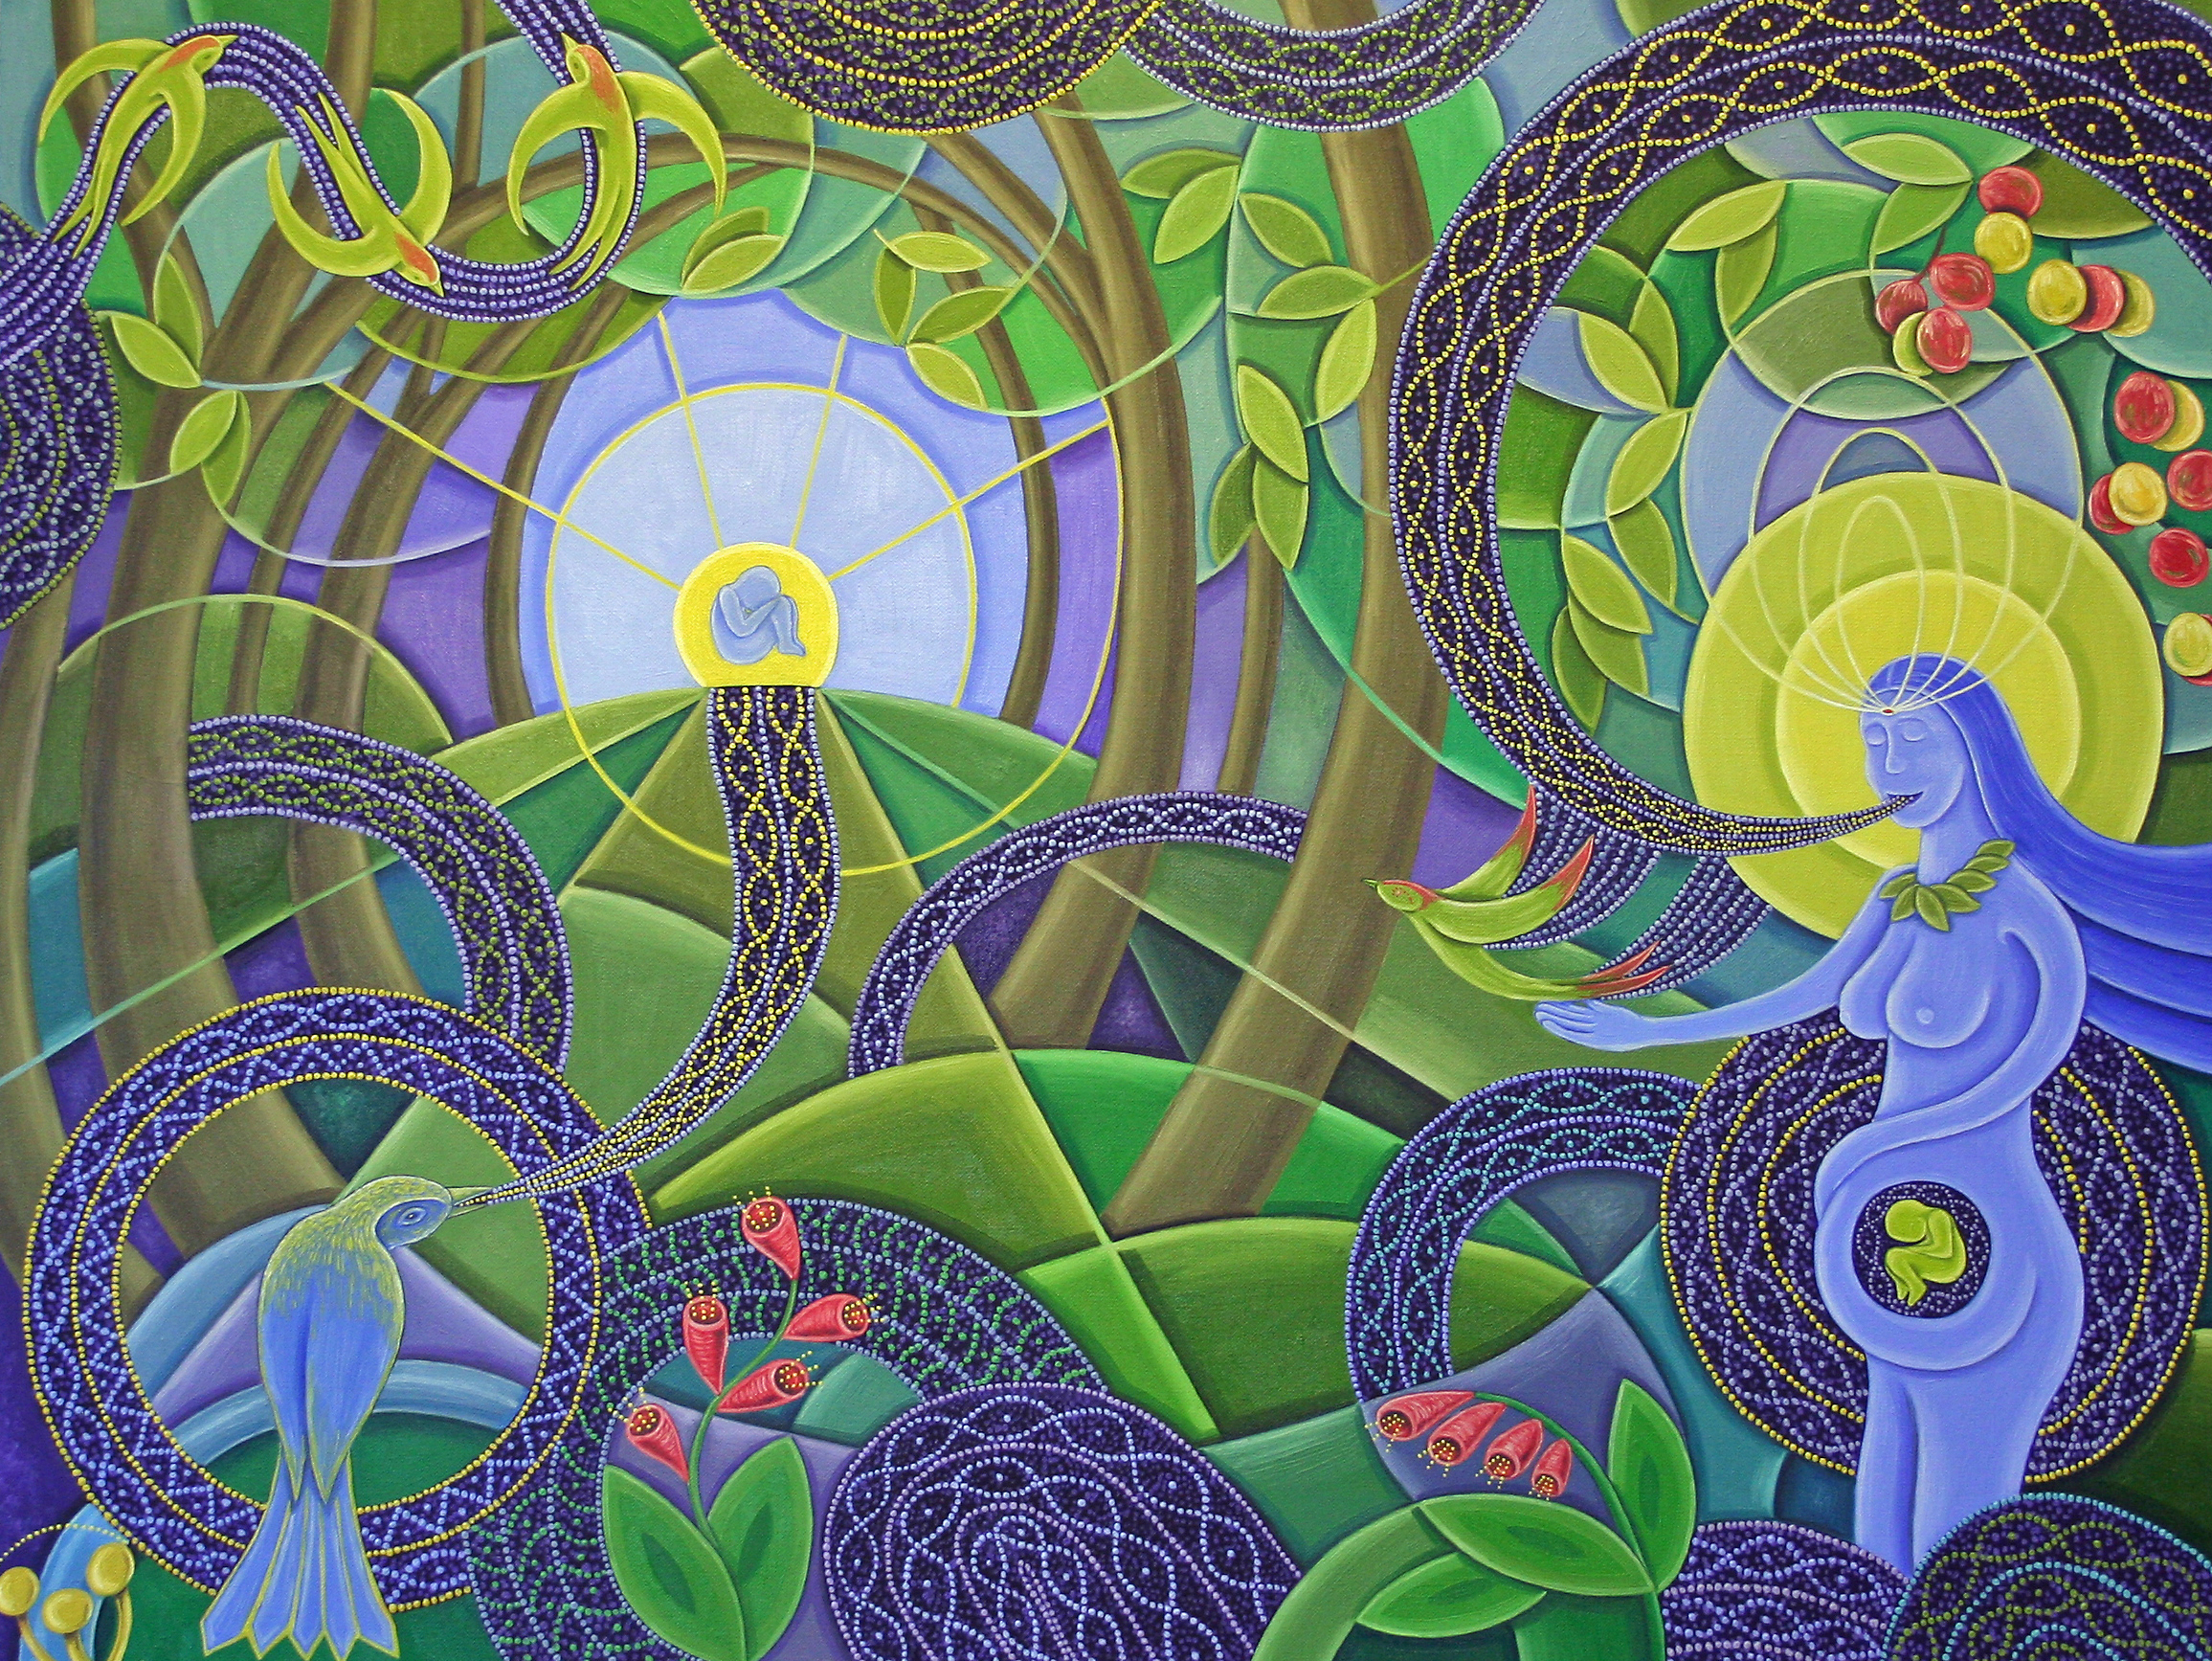 We Are Nature - oil on canvas - 48x36 inches - SOLD